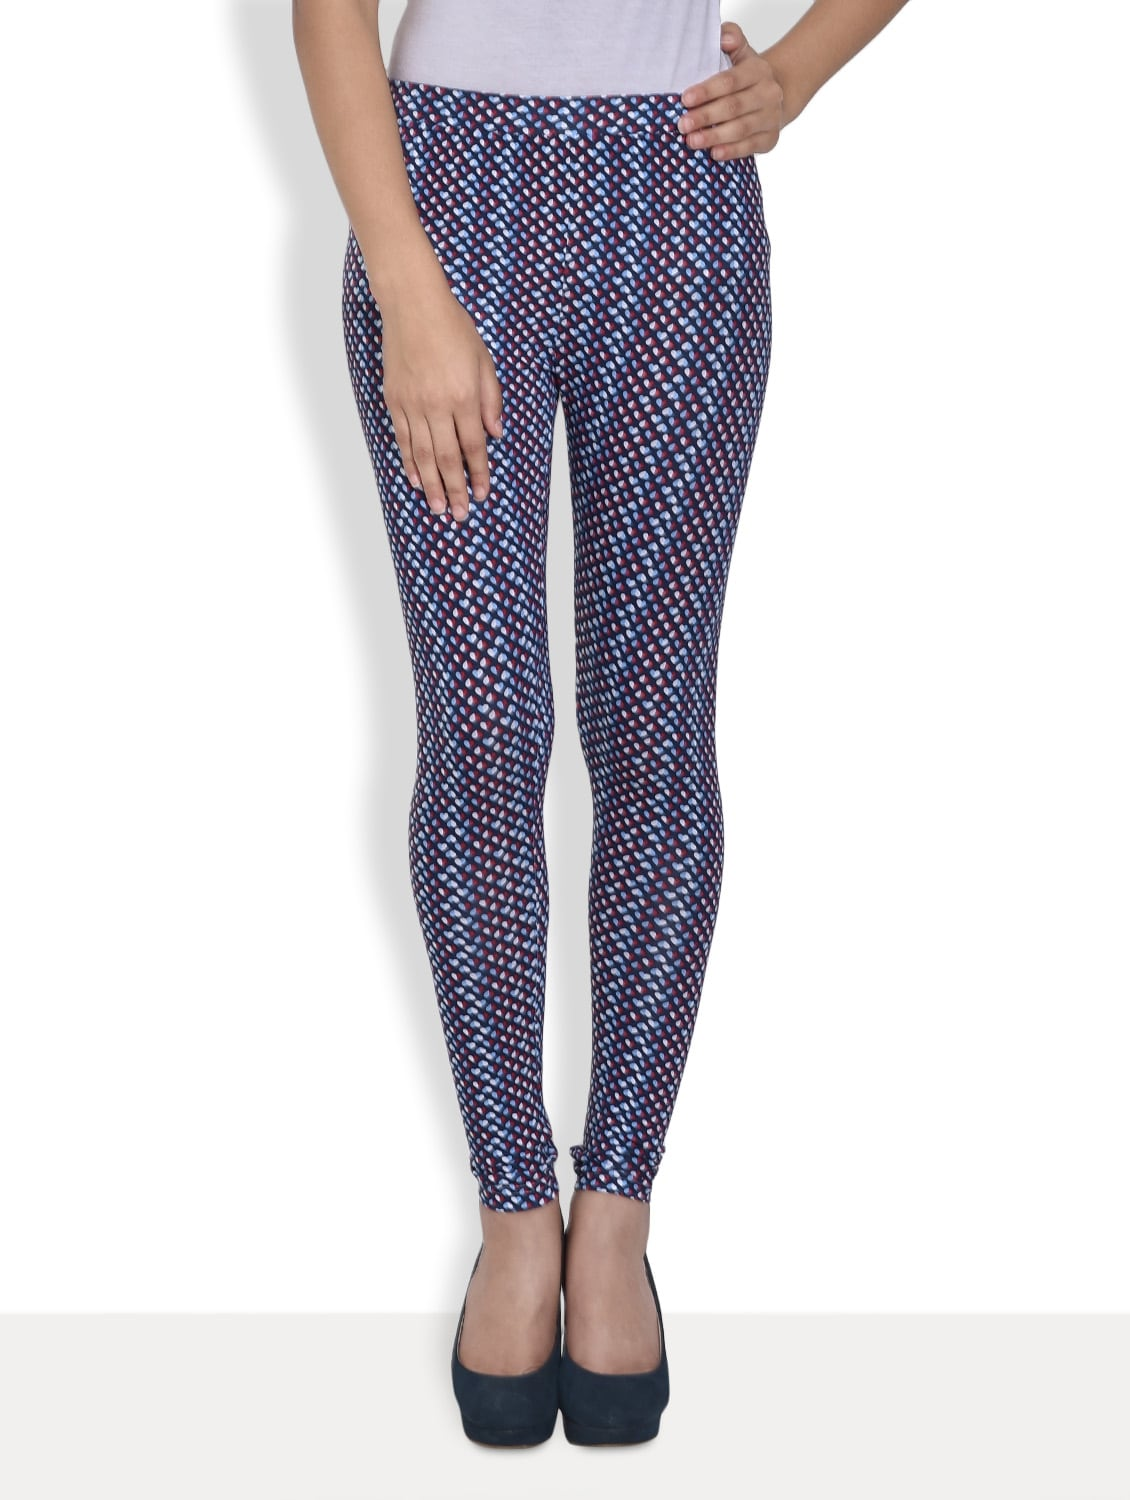 166bbd7f07d Buy Navy Blue And White Printed Leggings for Women from Sera for ...